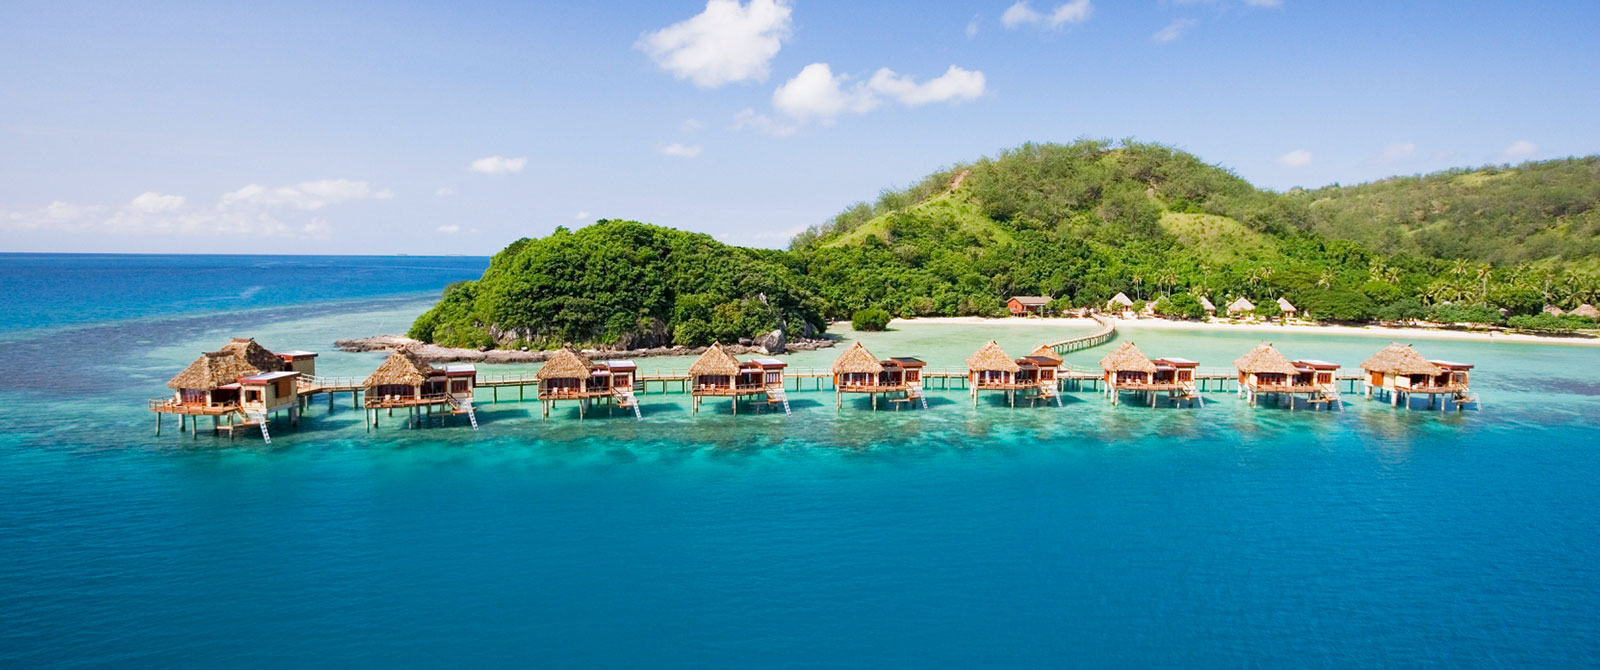 Likuliku Overwater Bungalows Fiji - Book Your Trip to Fiji - Fiji Travel Agency